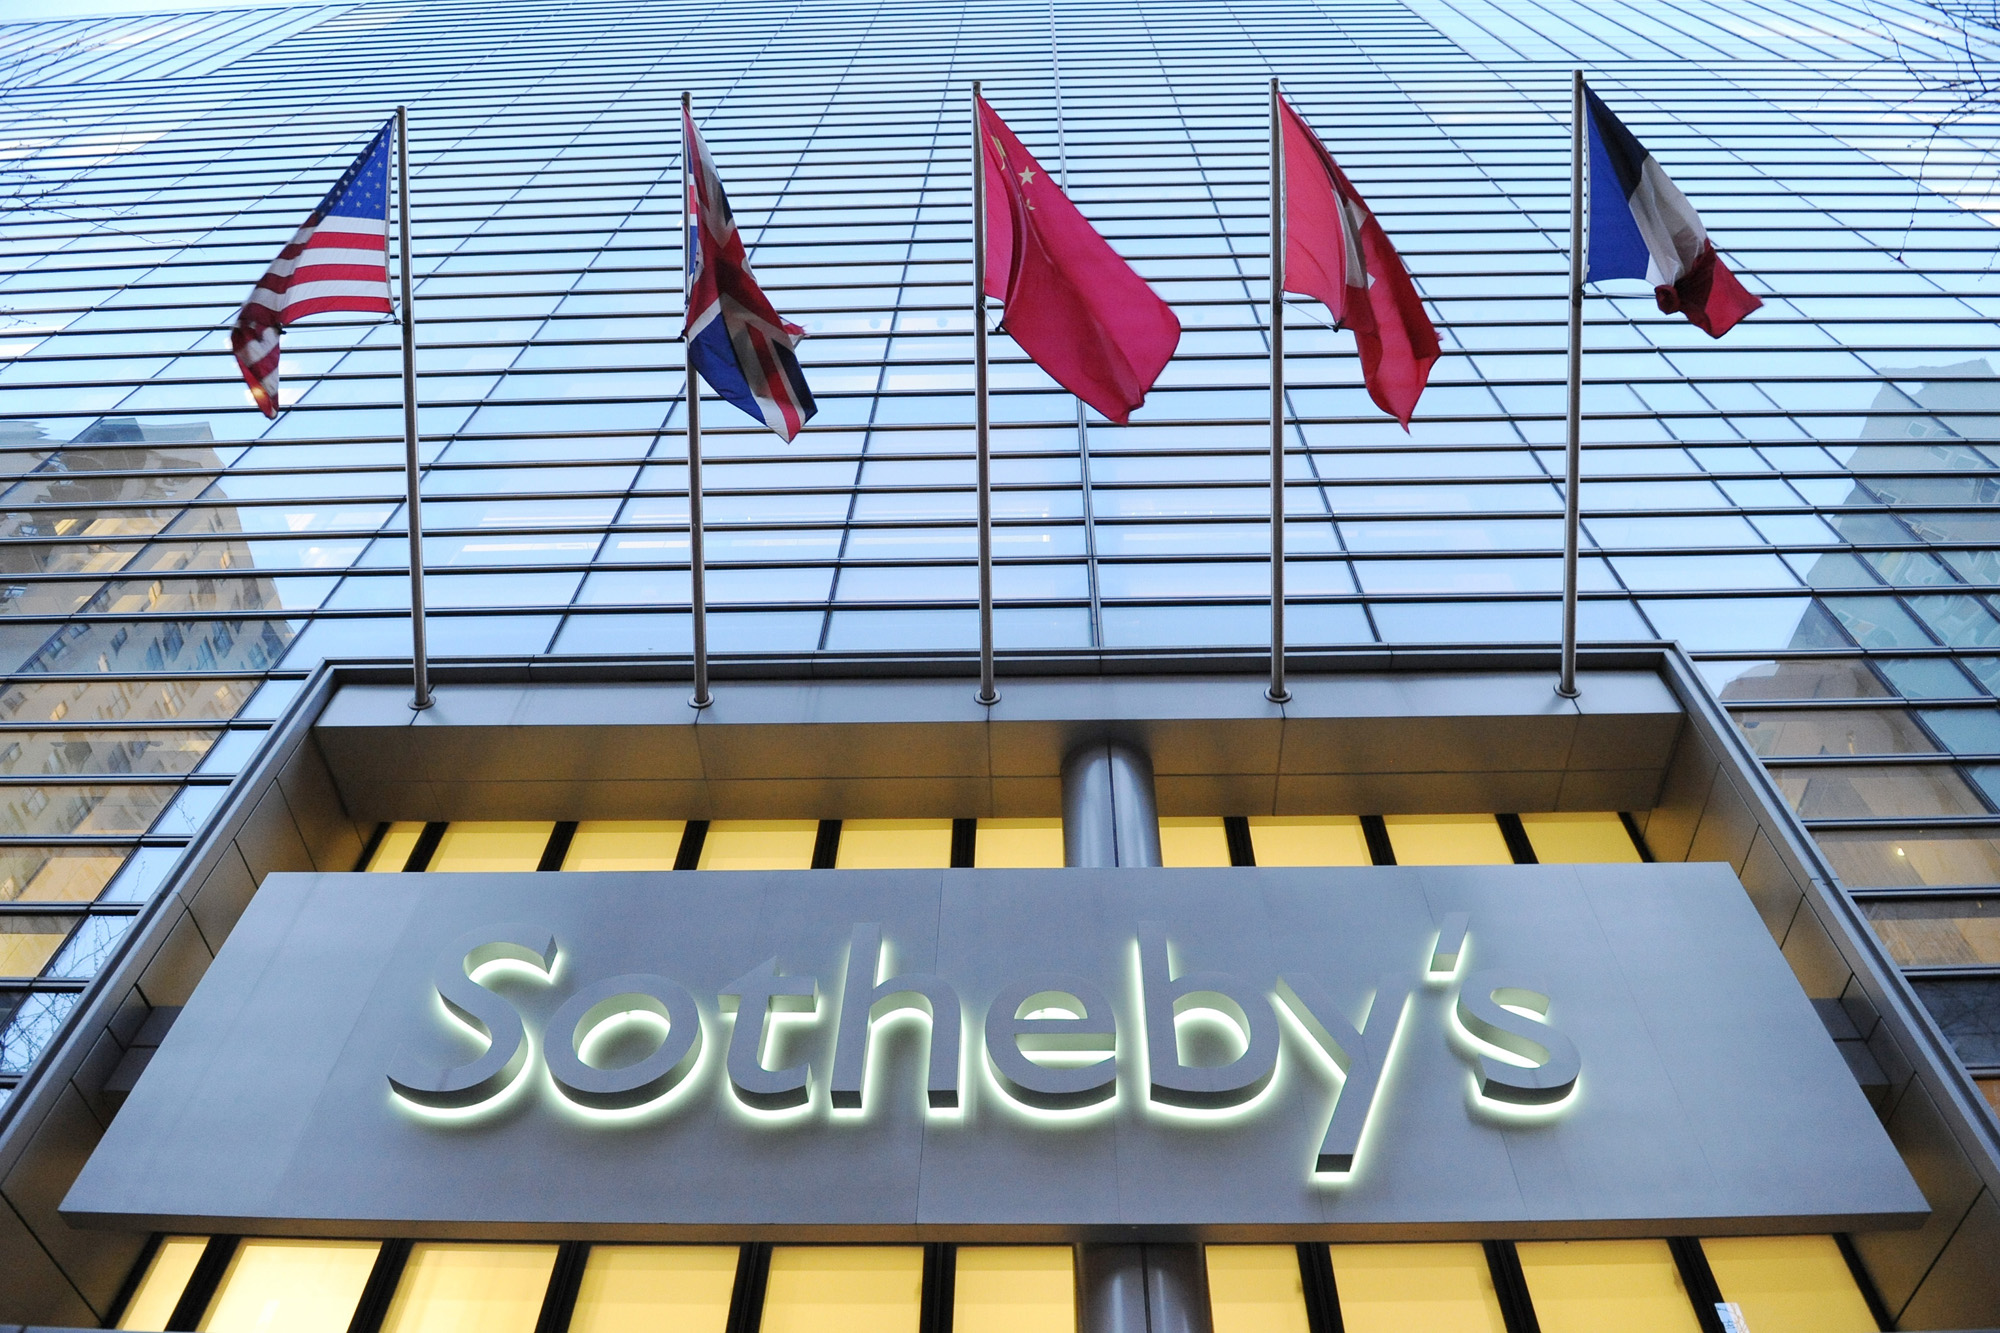 The exterior of the Sotheby's auction house in New York, NY as seen on May 1, 2013. (Photo/Christopher Sadowski)